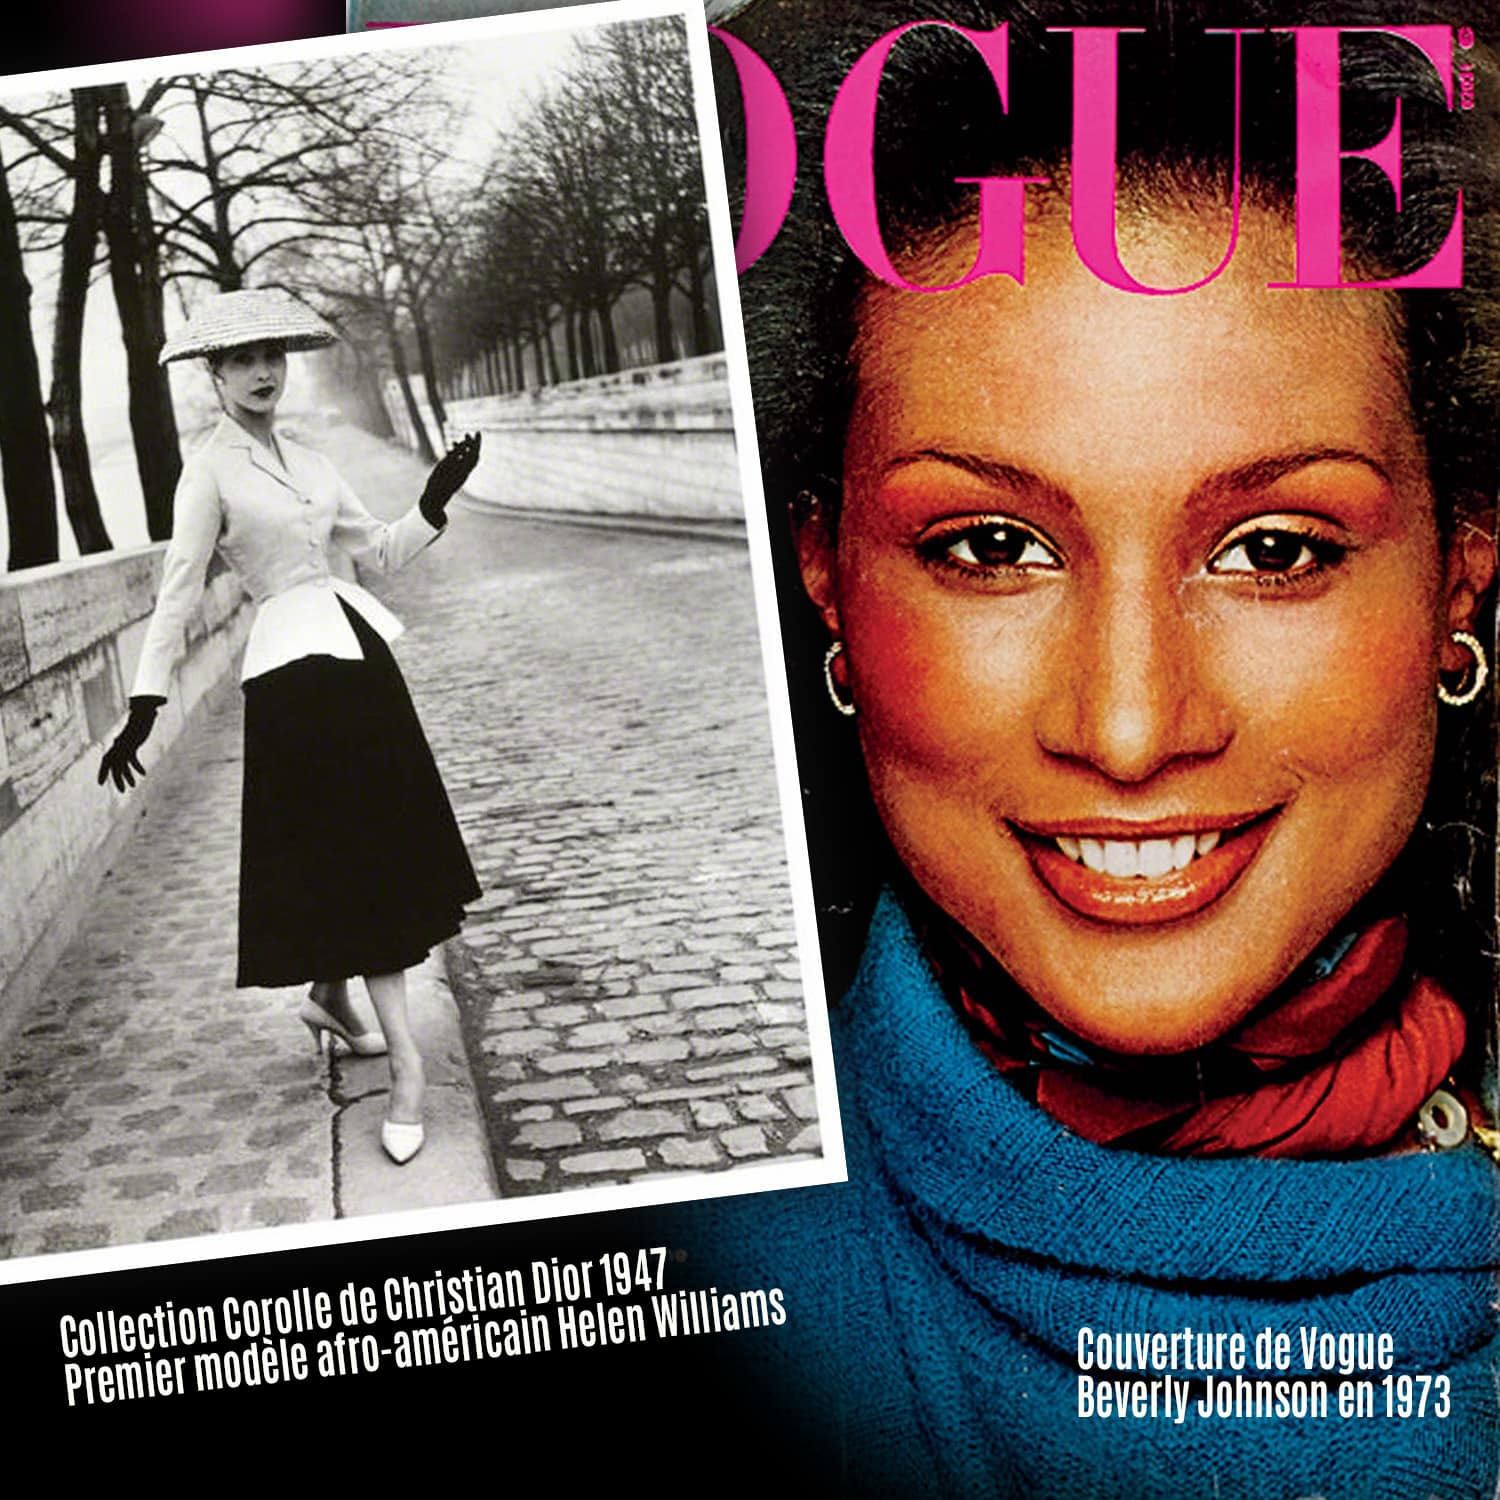 Christian Dior 1947, premier modèle afro-américain Helen Williams et Beverly Johnson en couverture de Vogue en 1973